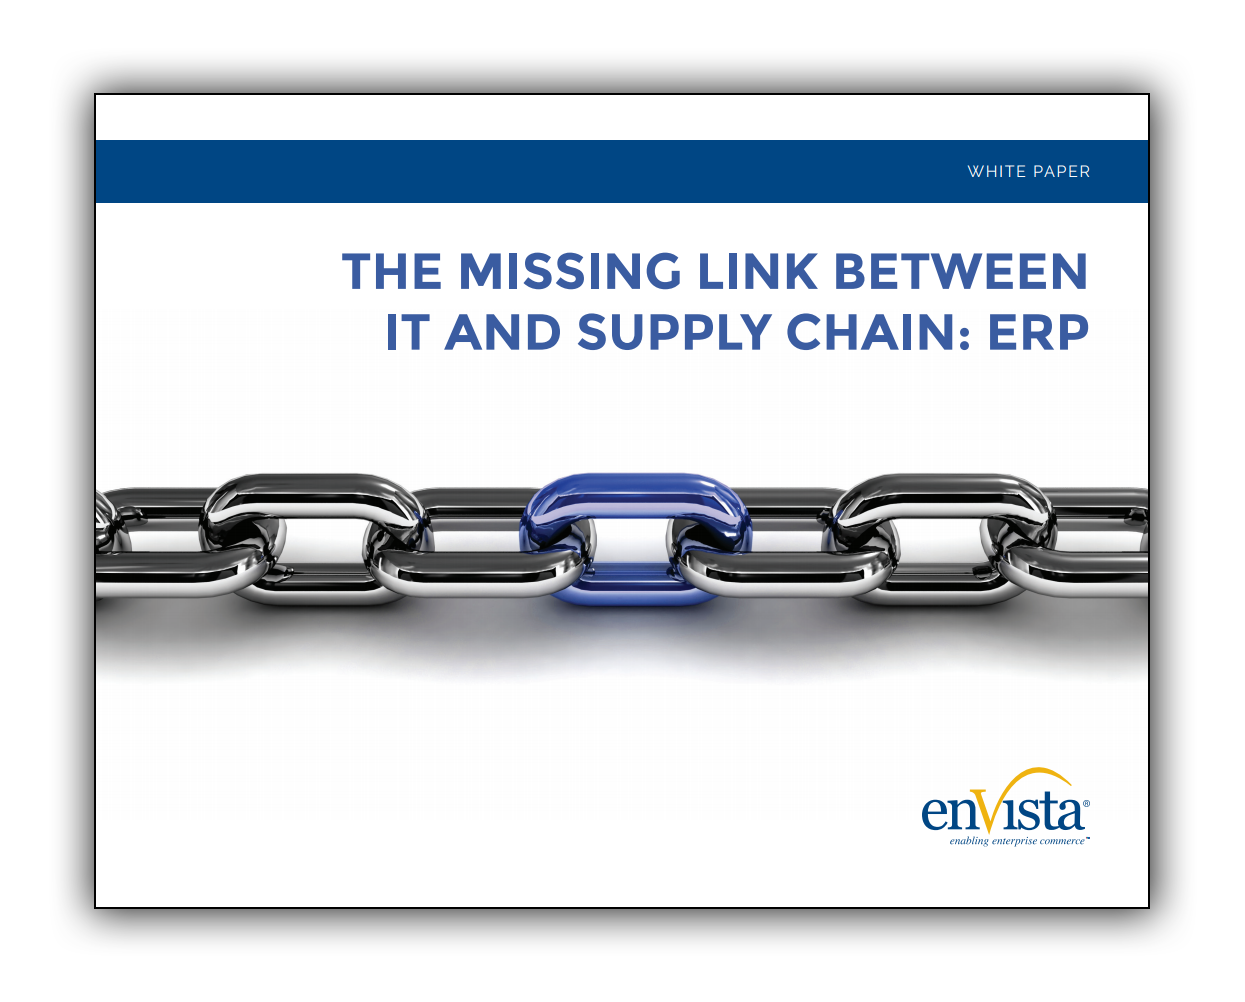 Image_missing-link-between-it-and-supply-chain-ERP.png